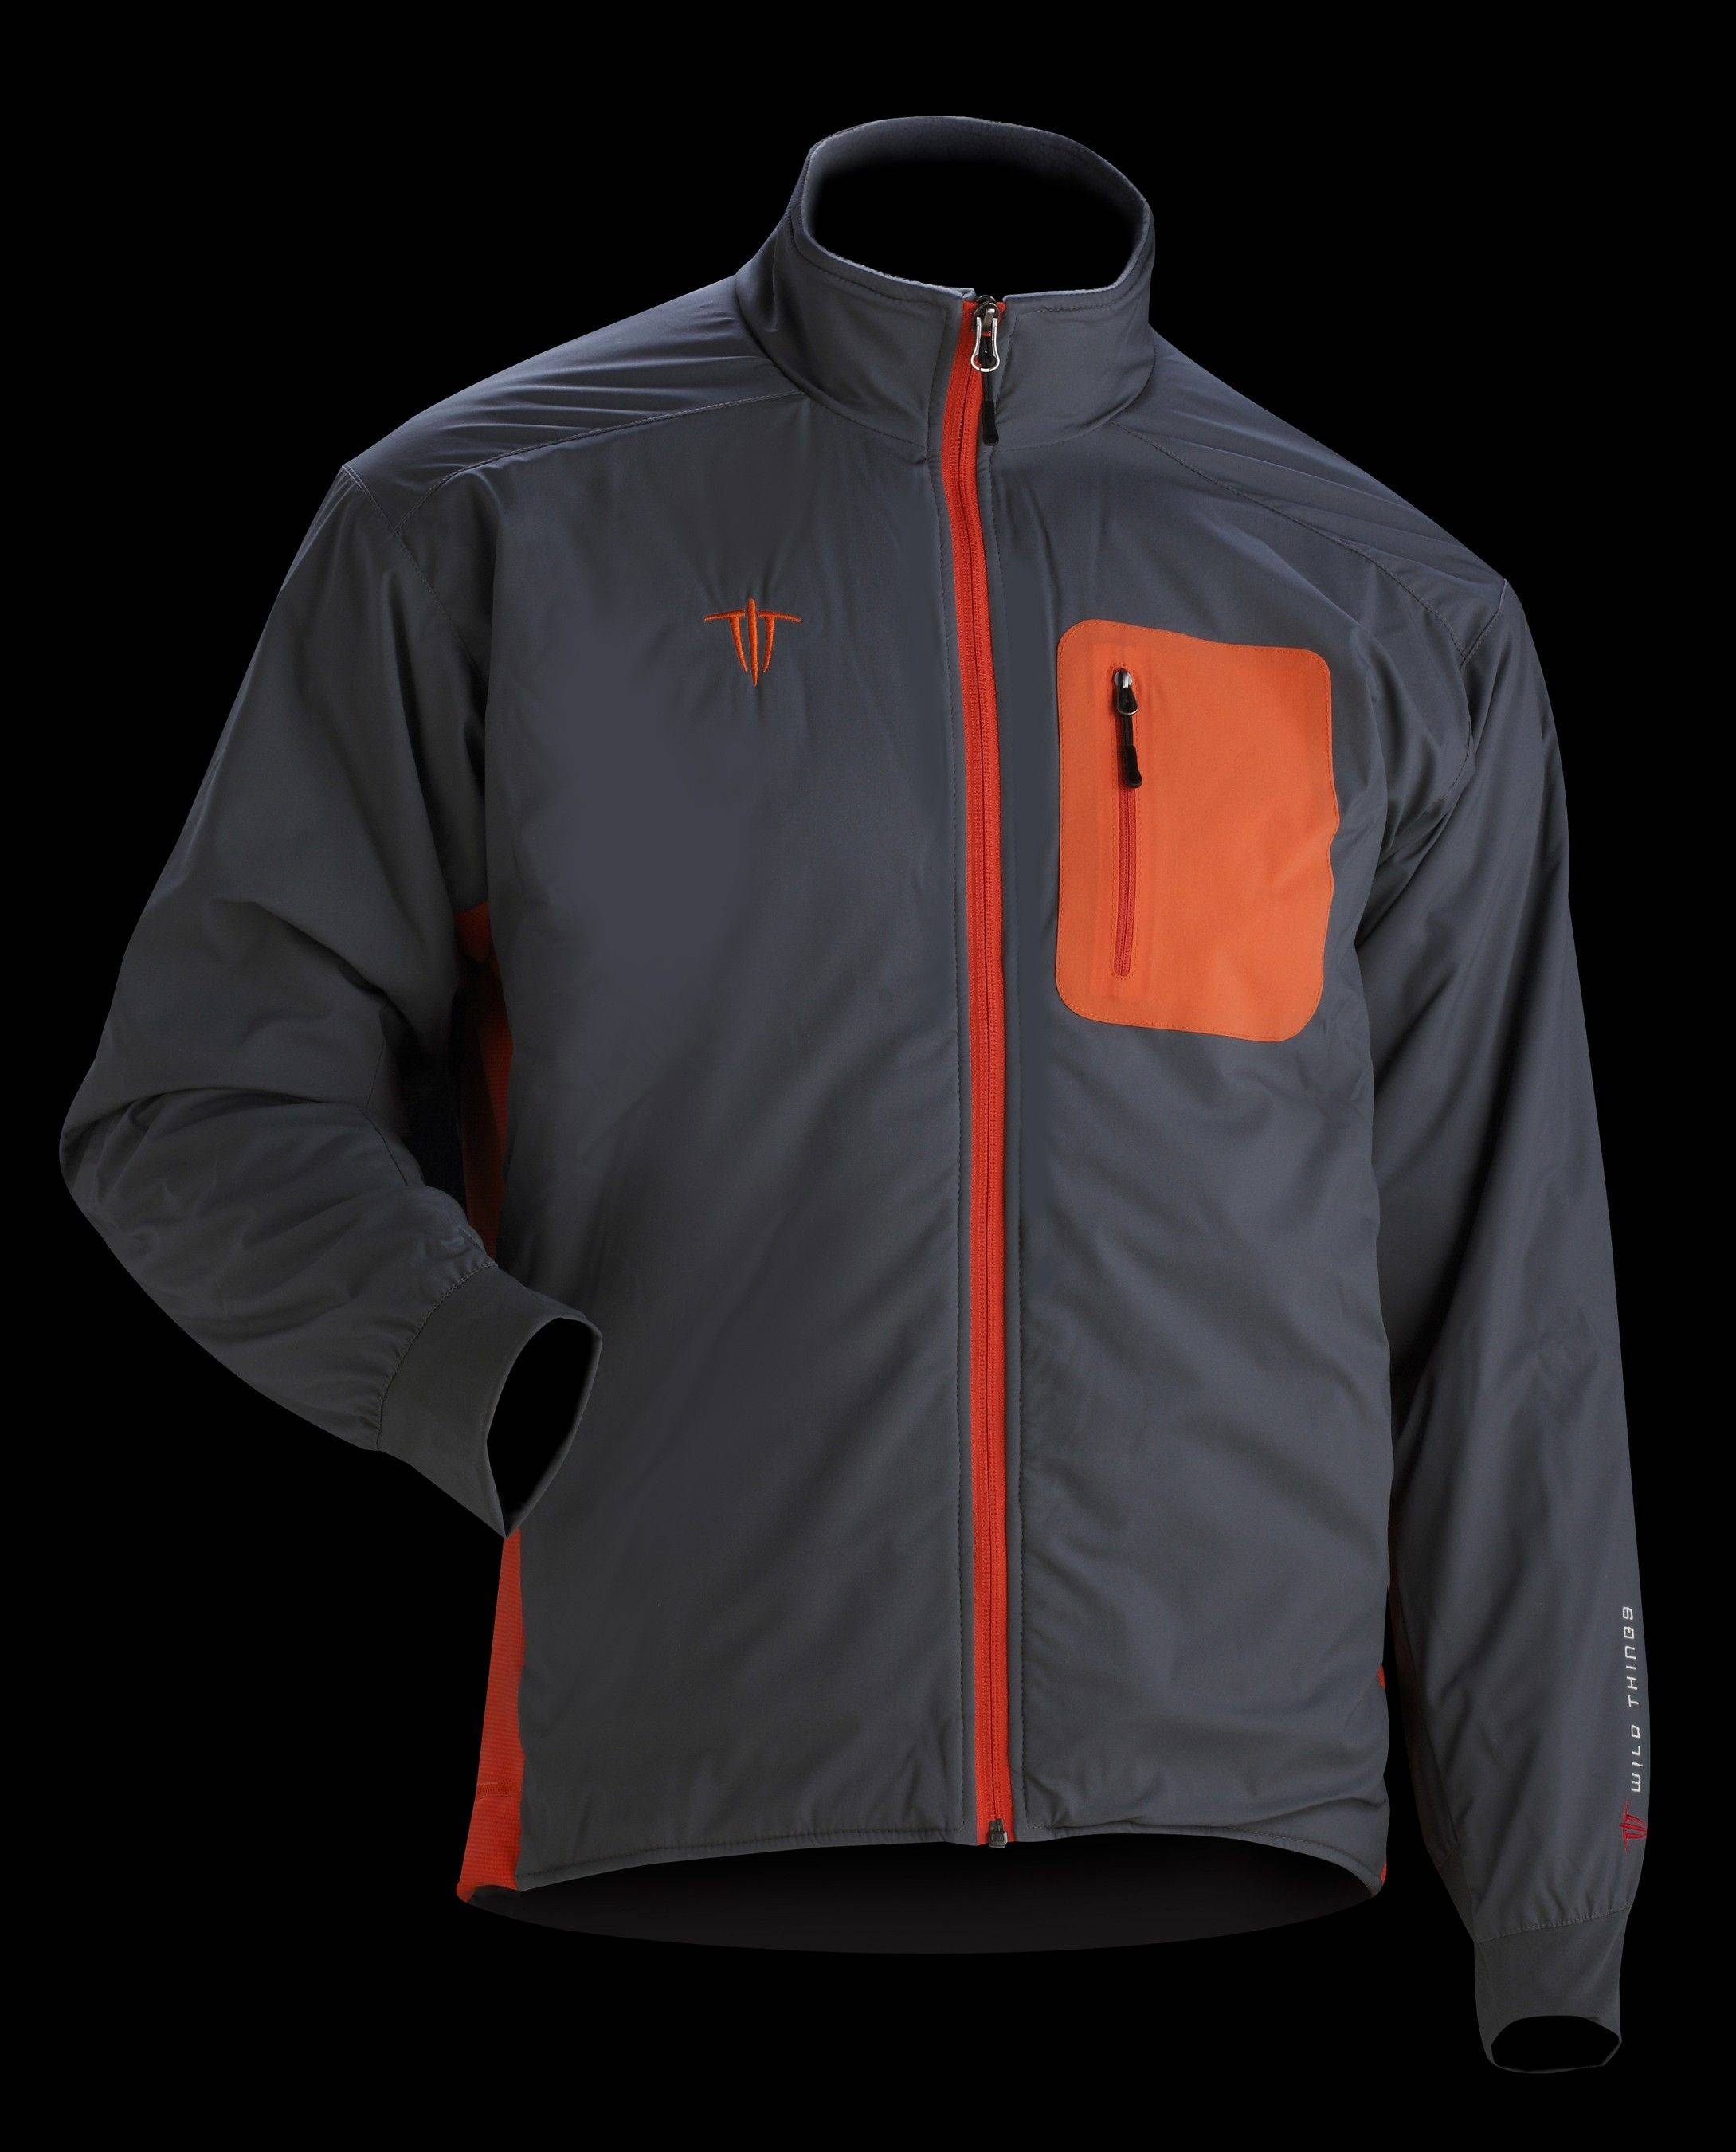 A men's Insulight jacket comes with a fleece-lined collar.